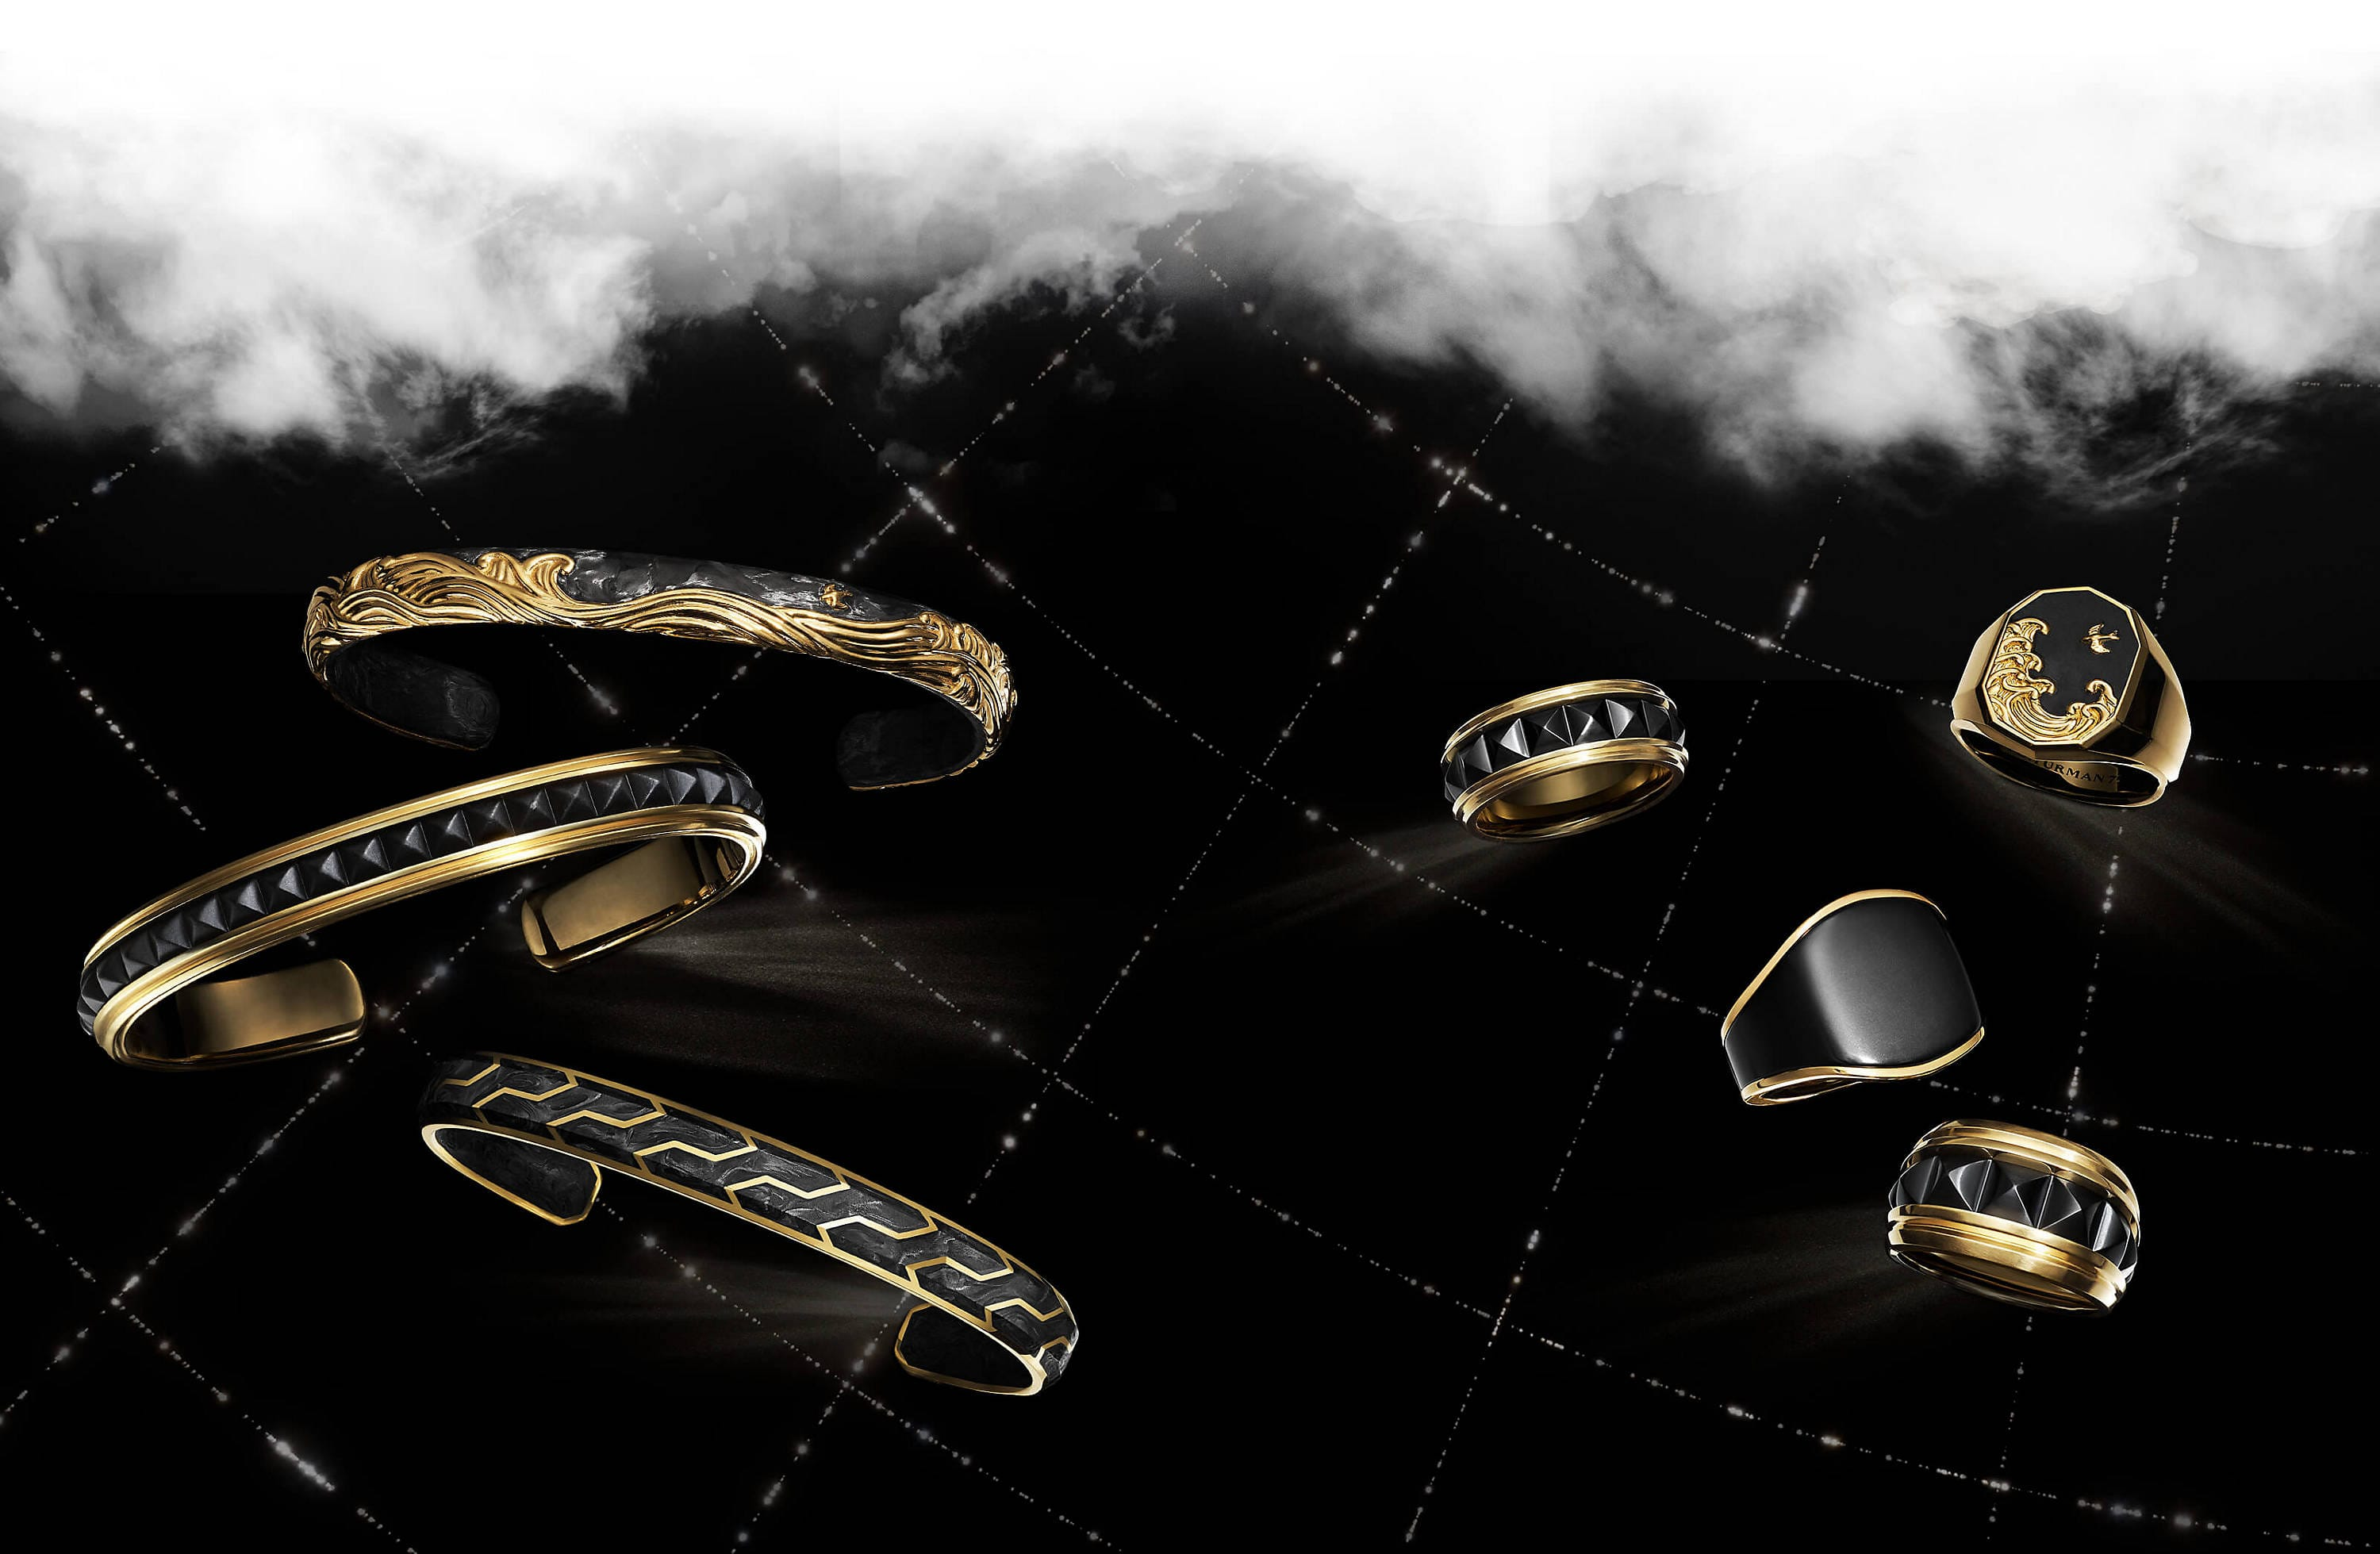 A color photo shows three David Yurman men's bracelets and four men's rings floating in a night sky with white clouds, and latitude and longitude lines. The jewelry is crafted from 18K yellow gold with or without forged carbon or black titanium.